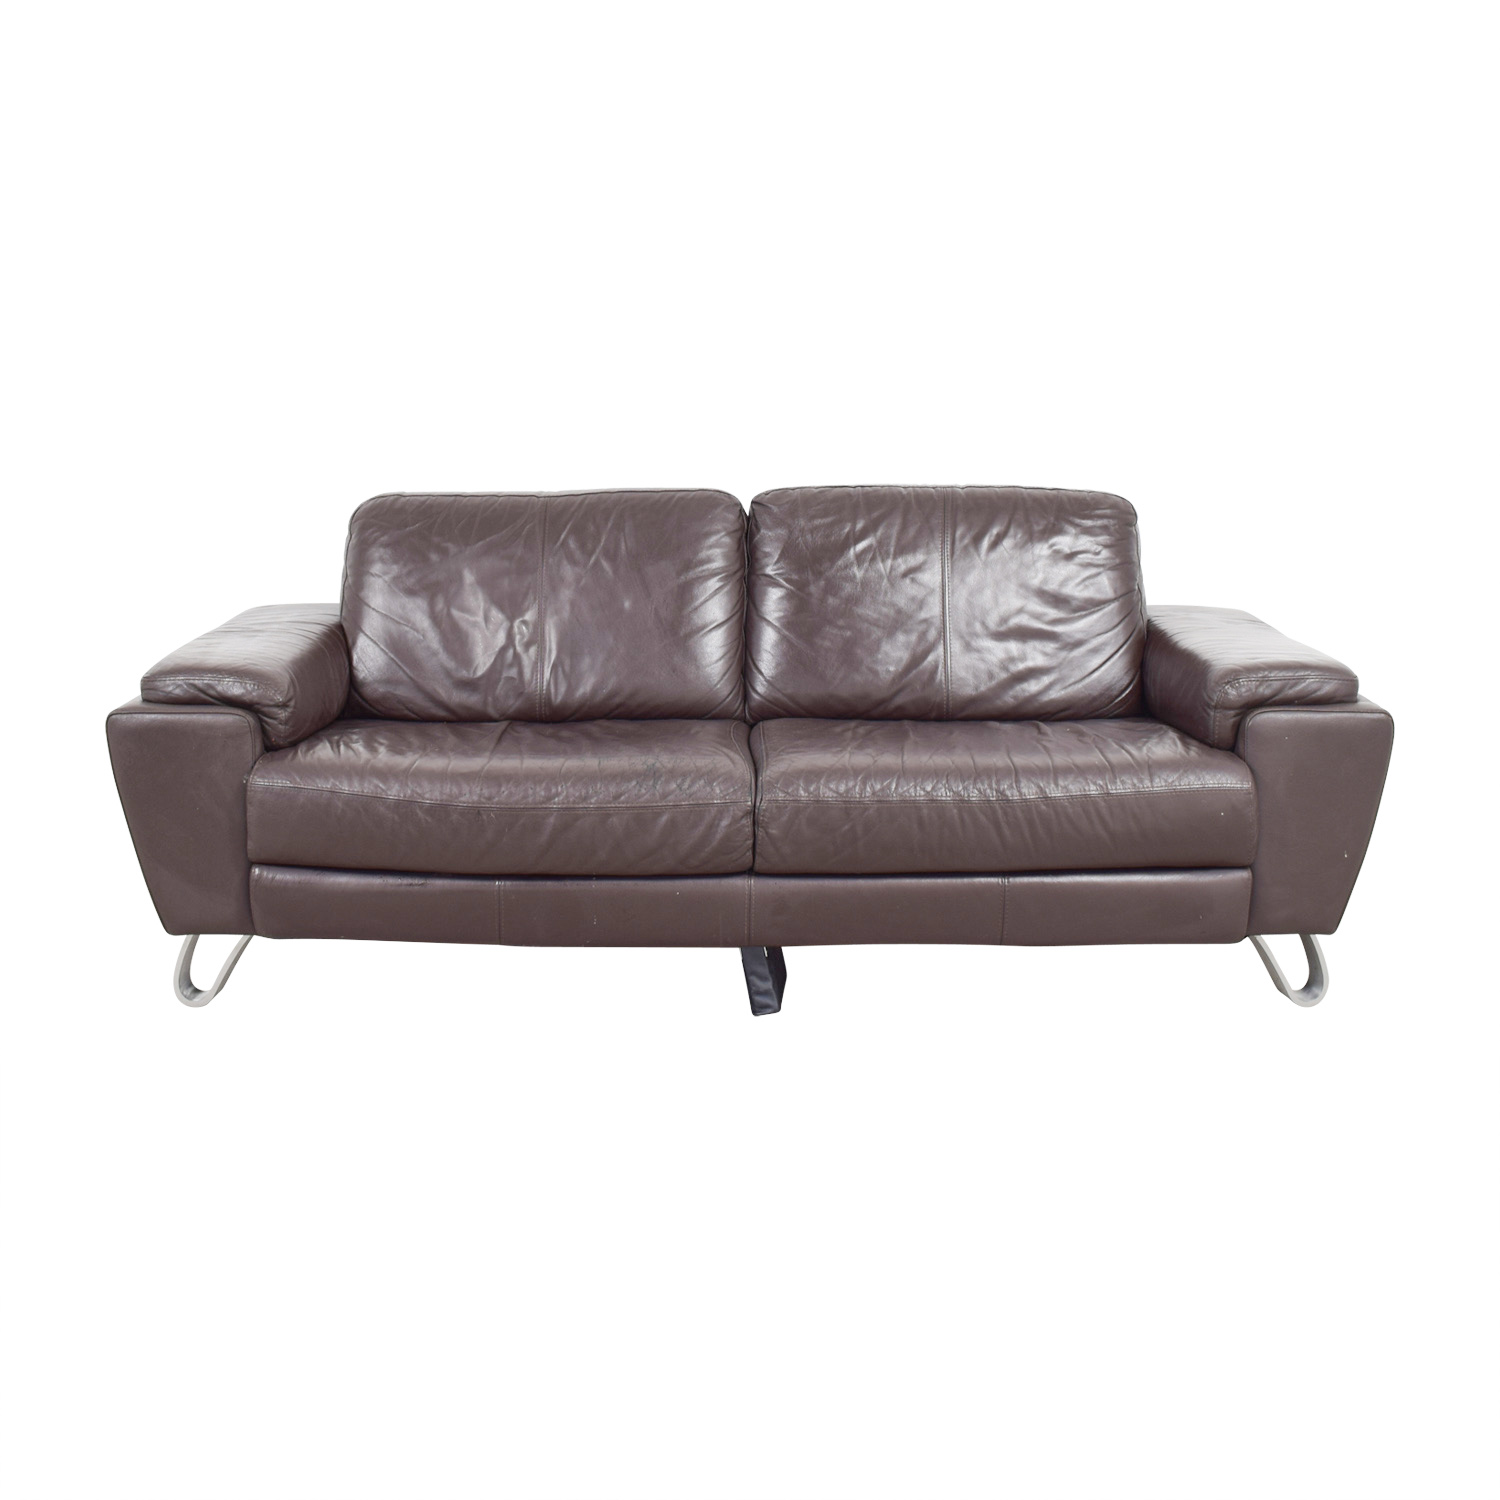 stanley sofa set india sherrill sofas for sale leather online s canada wstc co